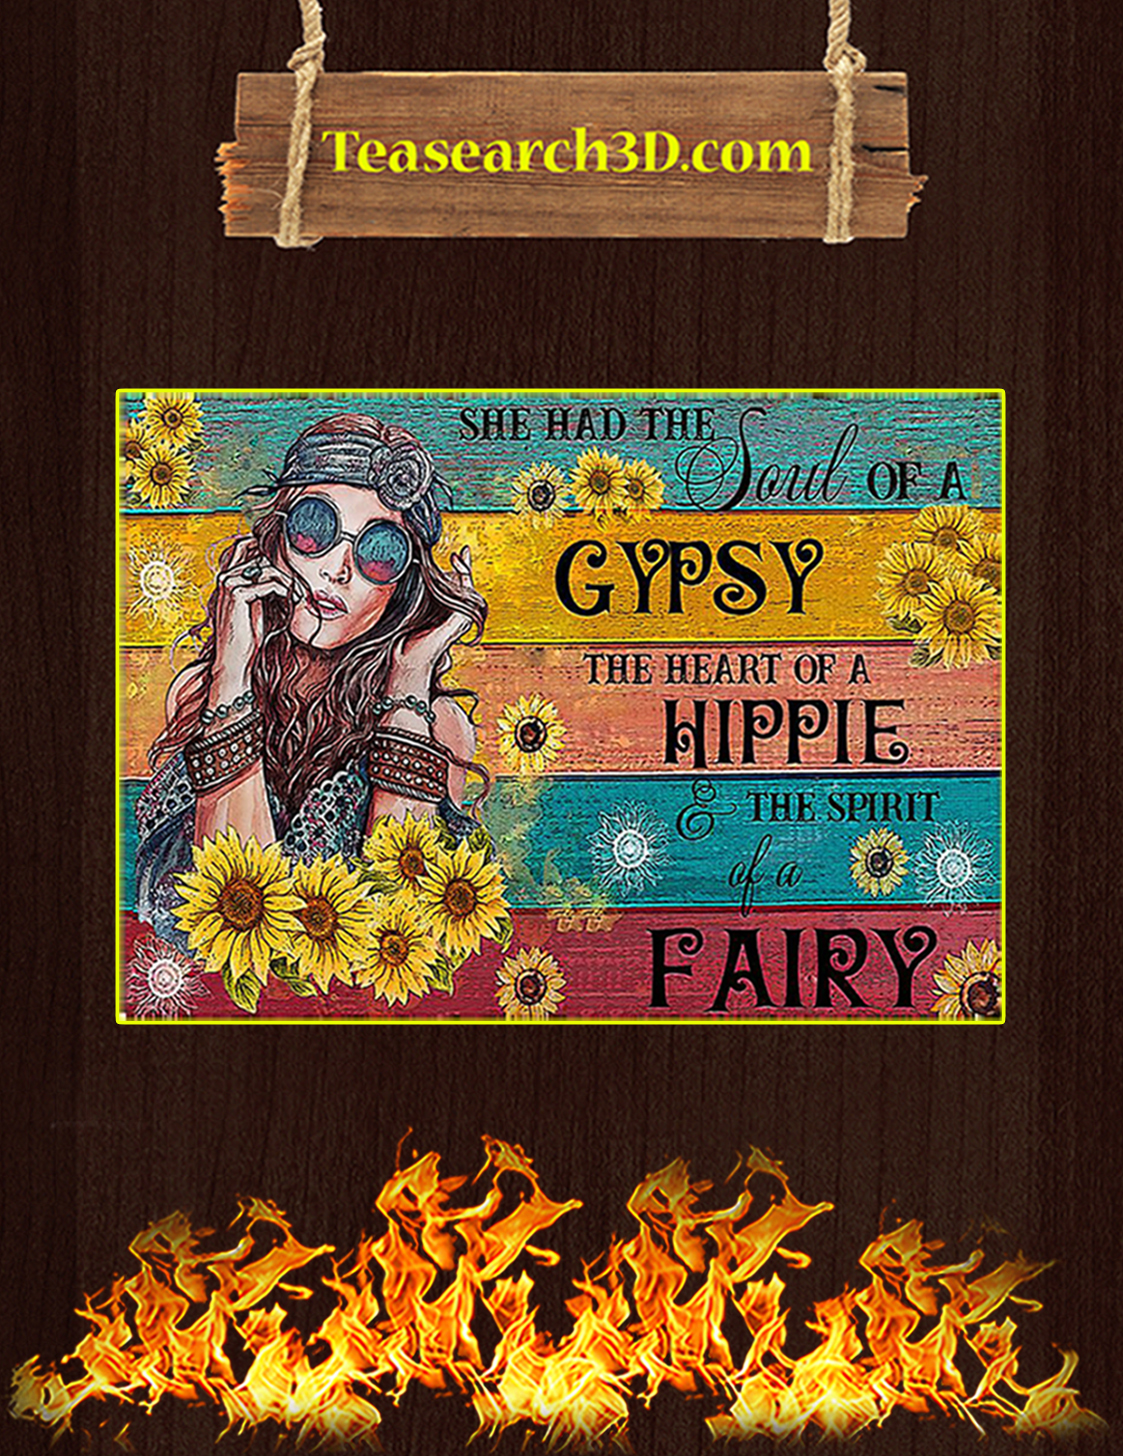 She had the soul of a gyspy the heart of a hippie poster A3